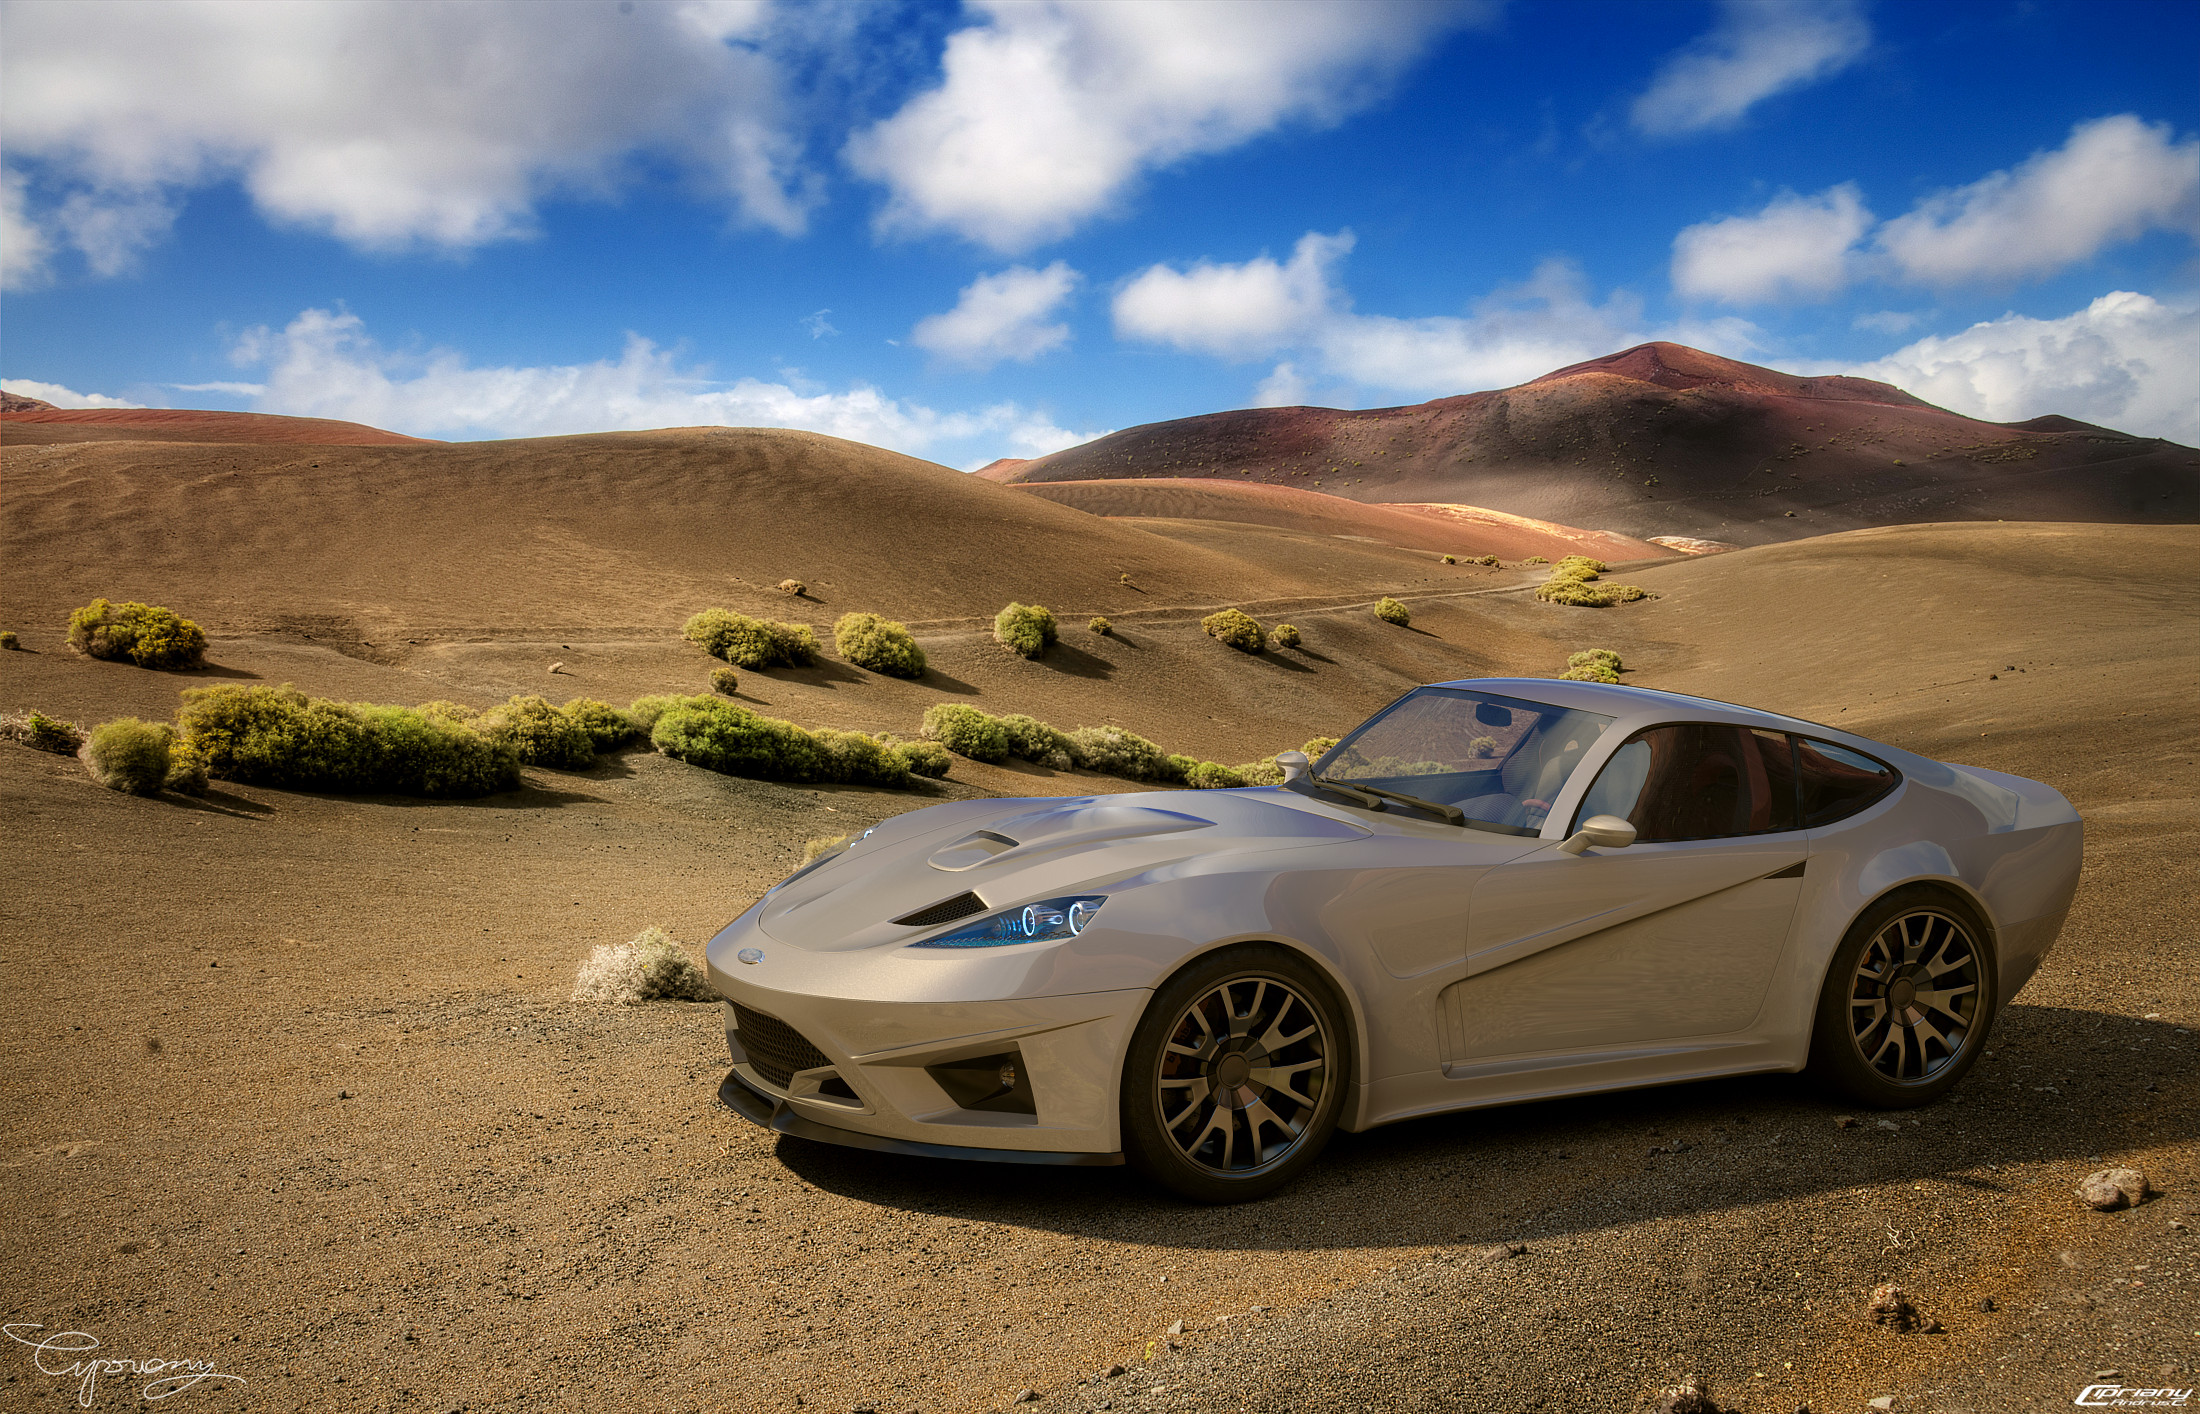 Ford GT-V concept 10 by cipriany